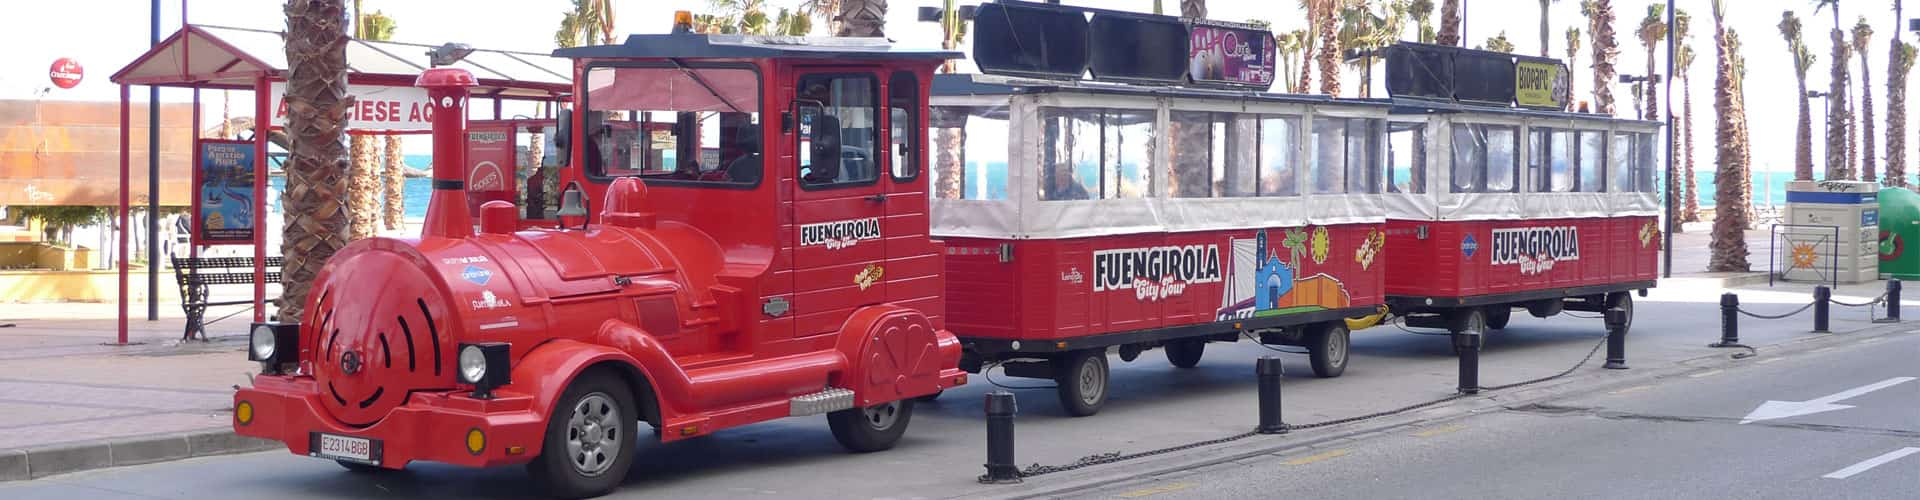 Fuengirola City Tour Train